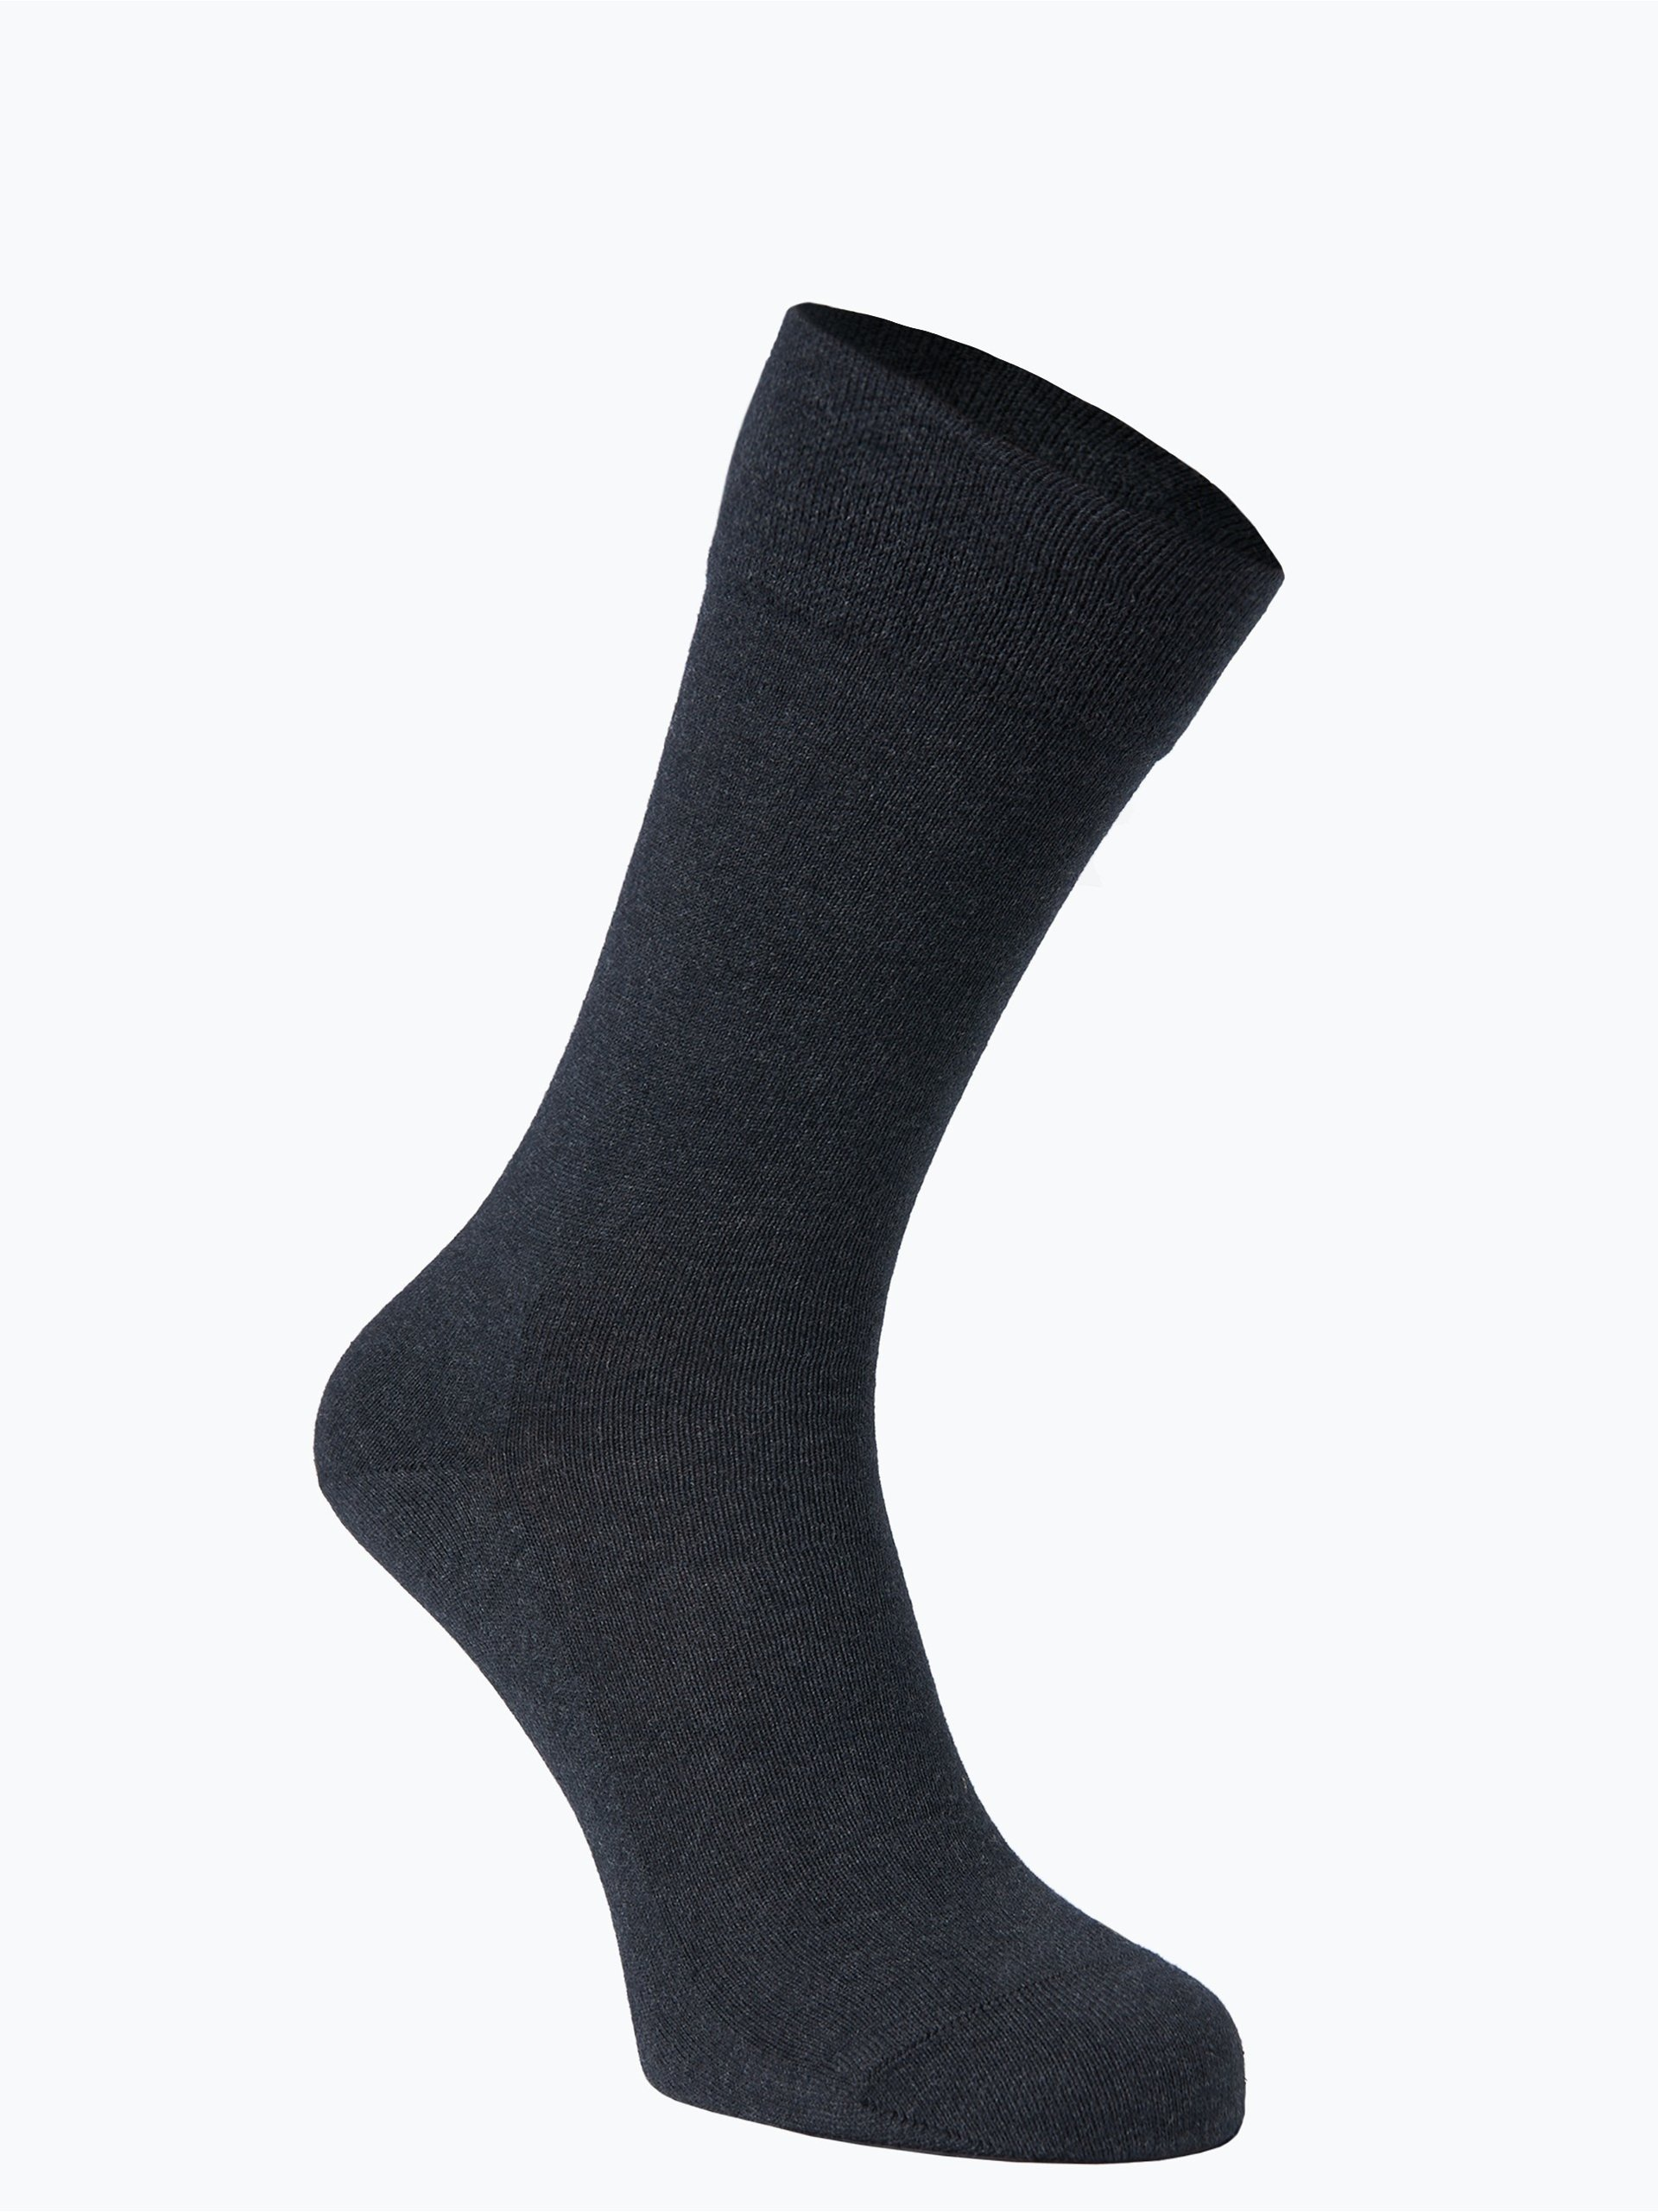 FALKE Herren Socken - Sensitive London